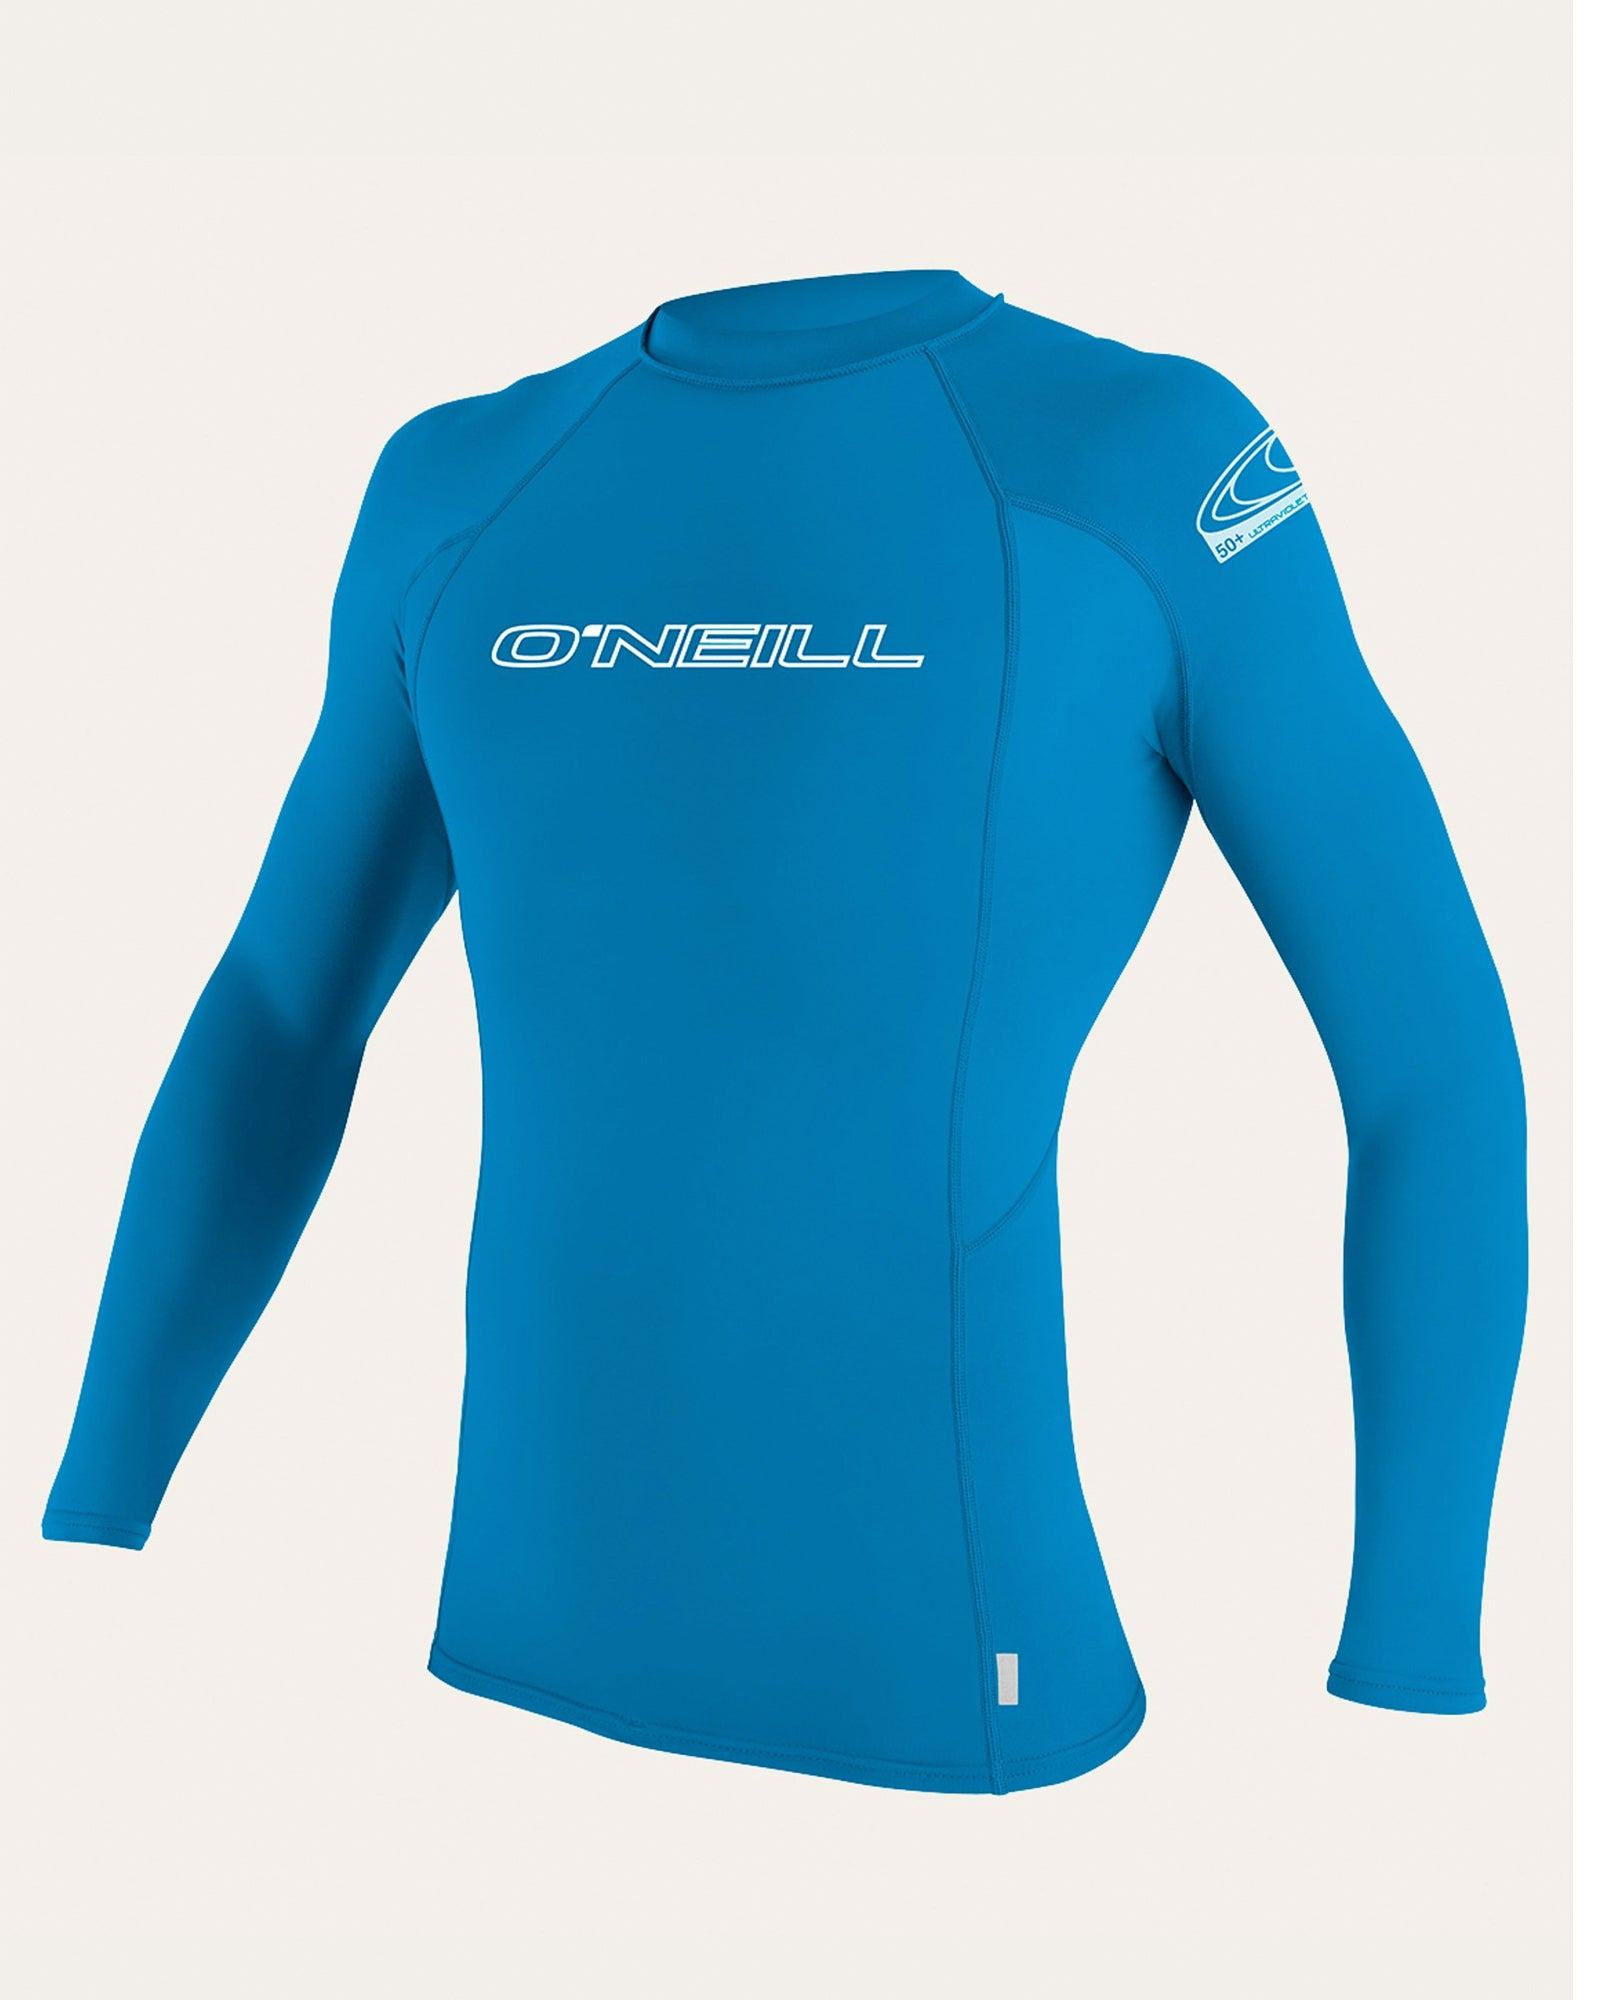 O'Neill Basic Skins Crew L/S Youth Boys Rashguard